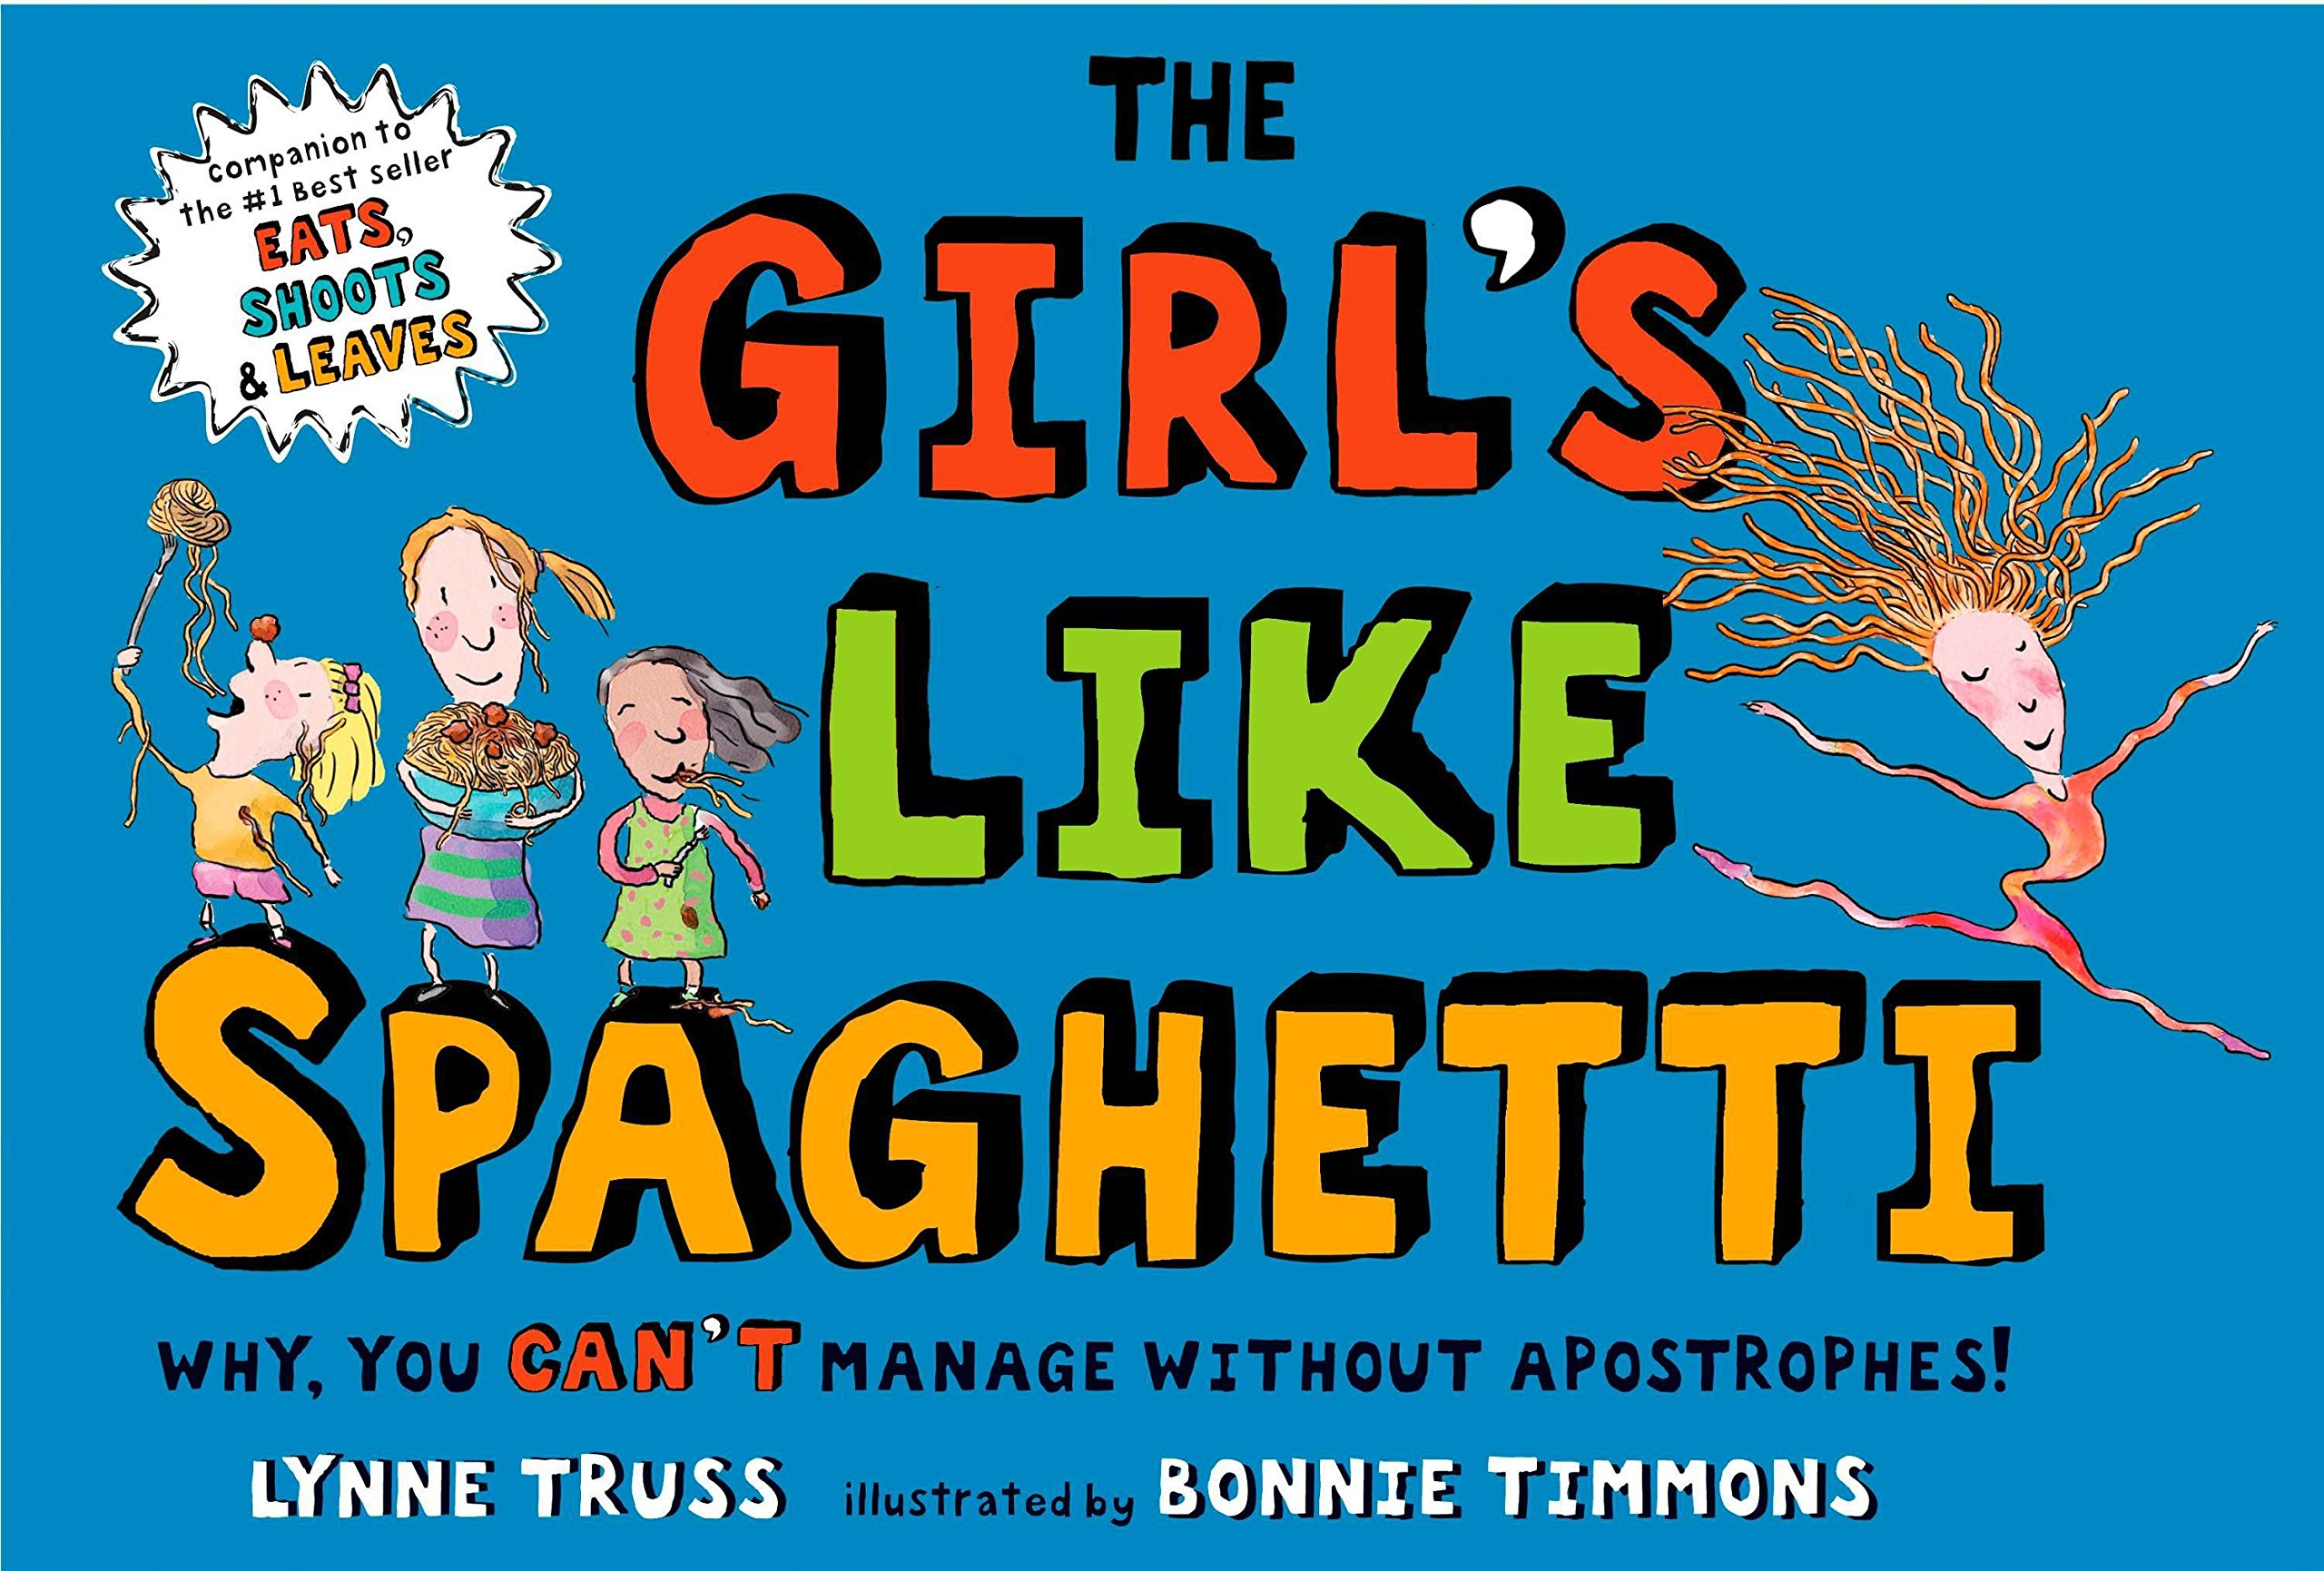 The Girl's Like Spaghetti: Why, You Can't Manage without Apostrophes! pdf